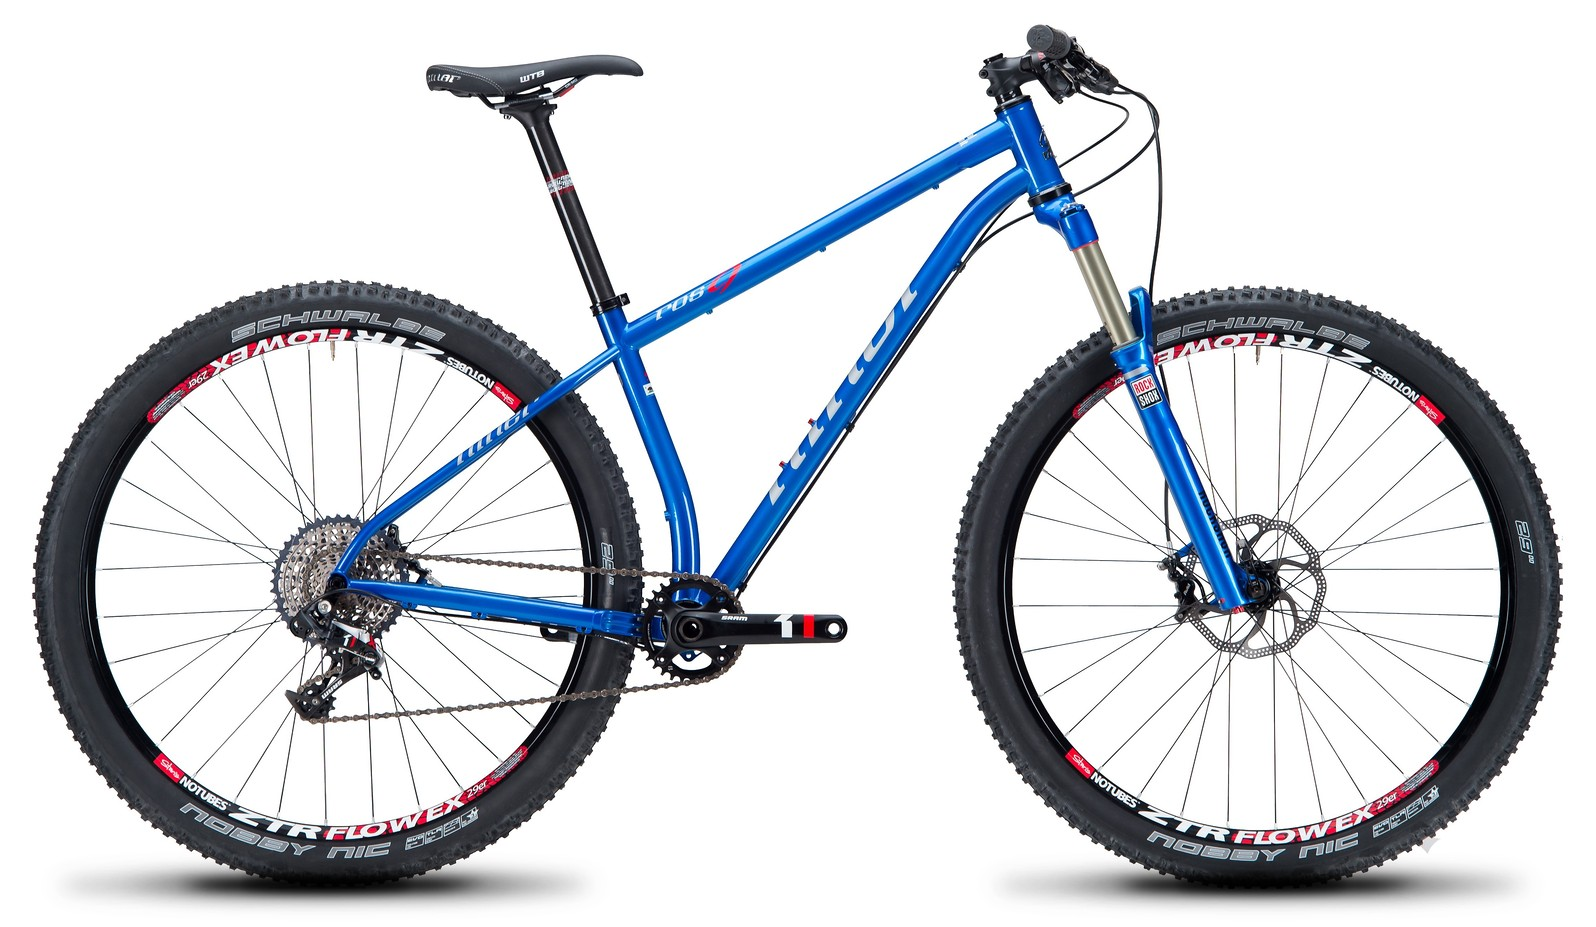 2014 Niner ROS 9 with X01  ROS9_4STARXO1